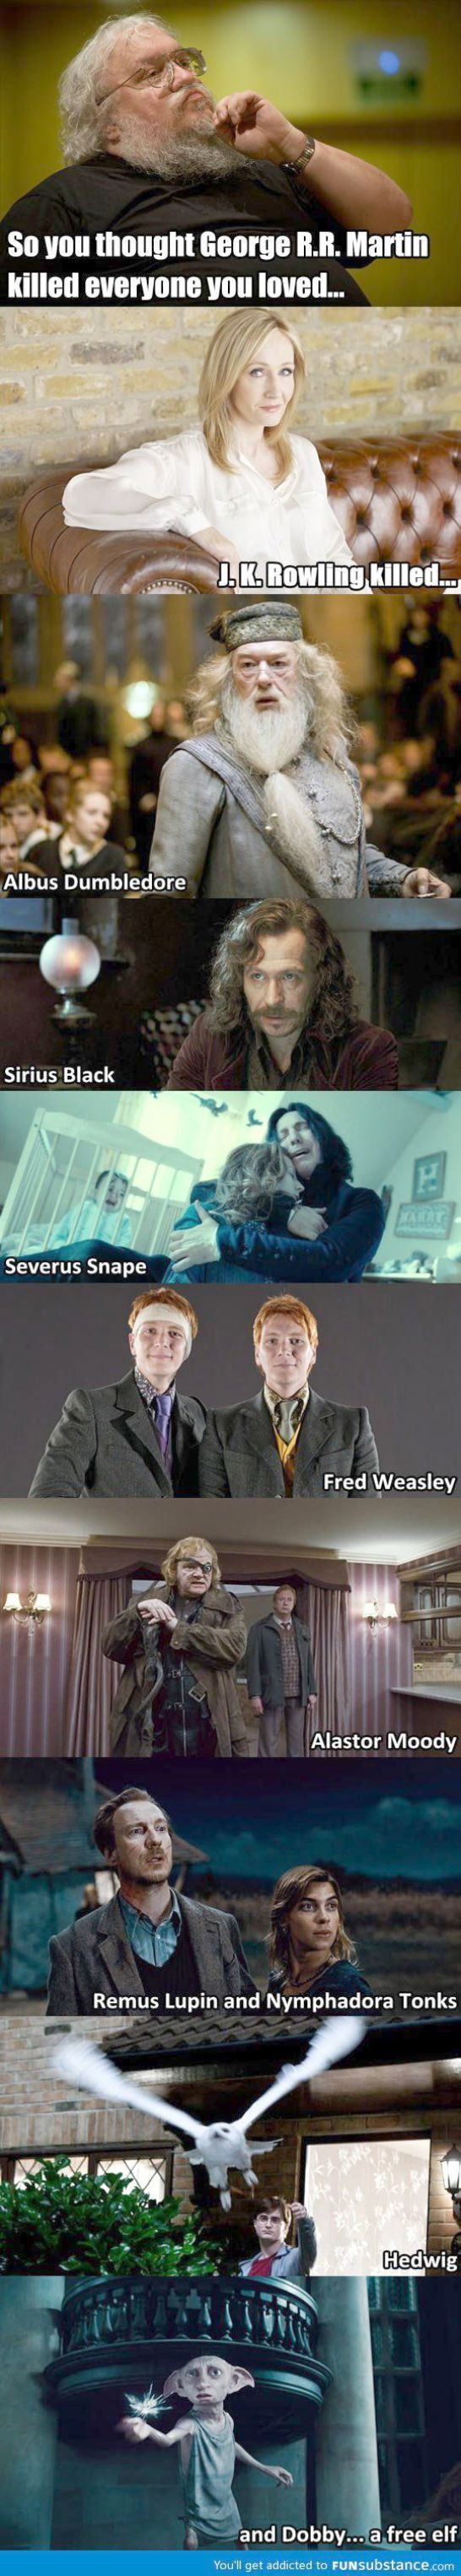 Harry Potter Memes Clean Funny Plus What Harry Potter House Am I Quiz By Jk Rowling Like Harry Potter H Harry Potter Jokes Harry Potter Funny Harry Potter Love